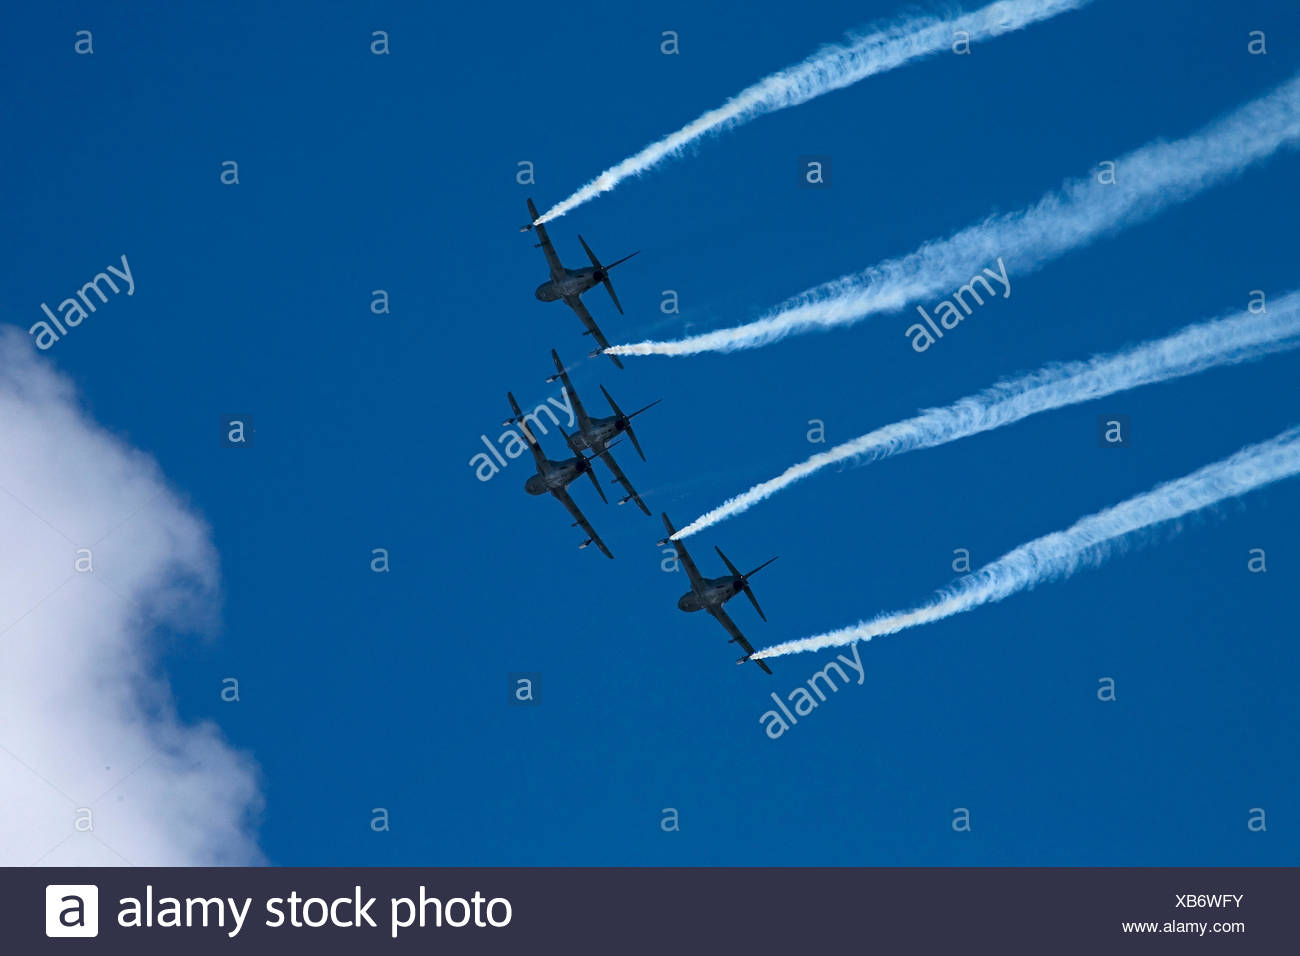 Hawk aeroplane in Air Show Malmi Finland 2009 - Stock Image